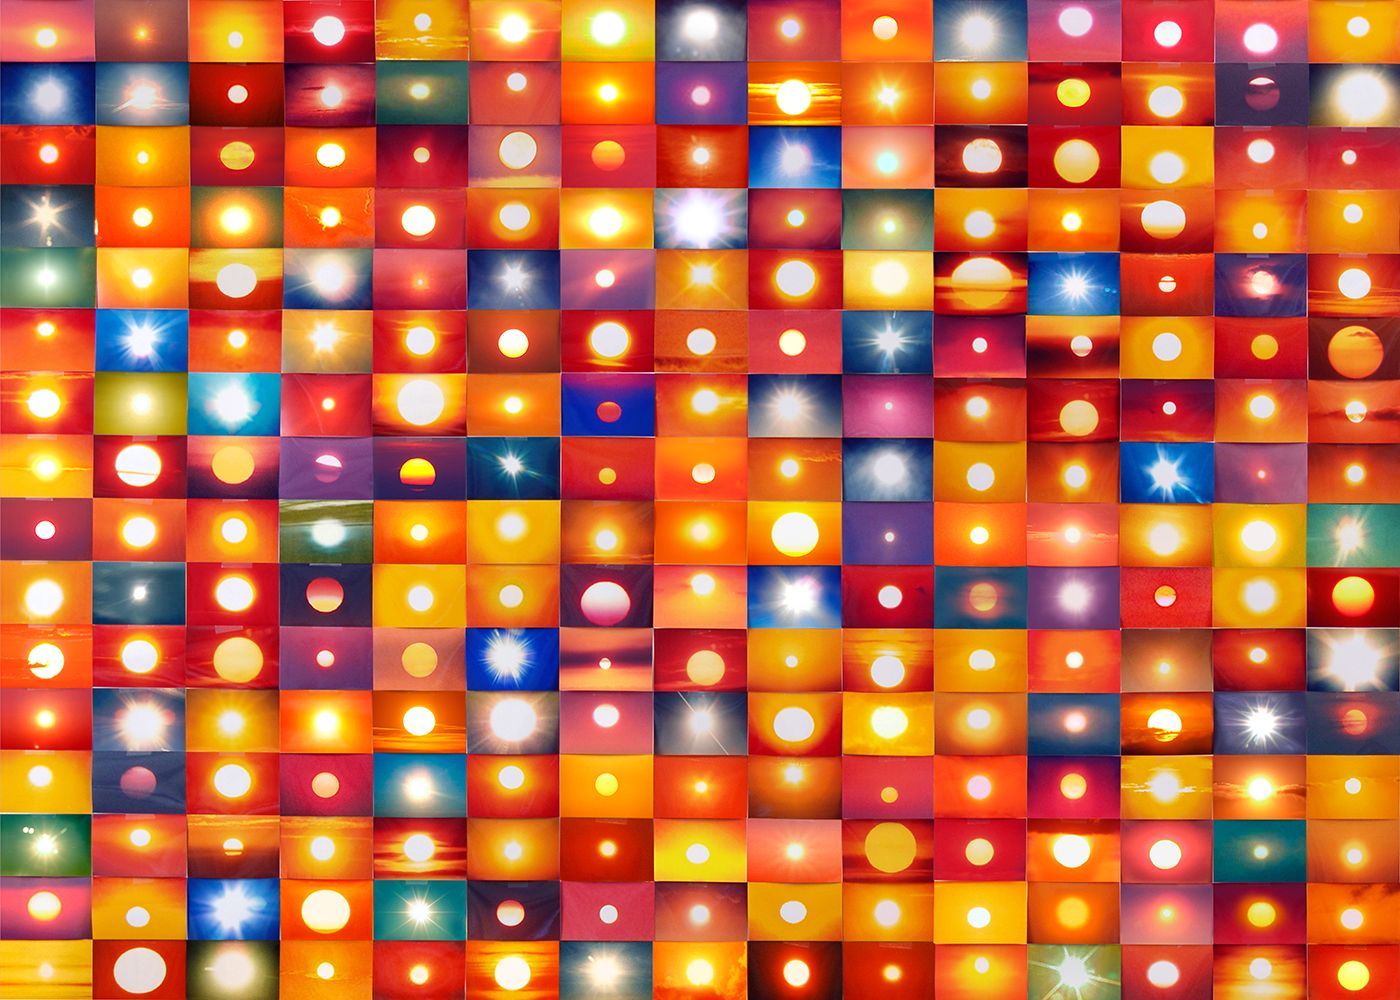 Penelope Umbrico, '541,795 Suns from Sunsets from Flickr (Partial) 01/23/06,' 2006-ongoing, detail, 2500 4 inch x 6 inch c-prints. Courtesy Mark Moore Gallery and Bruce Silverstein Gallery.